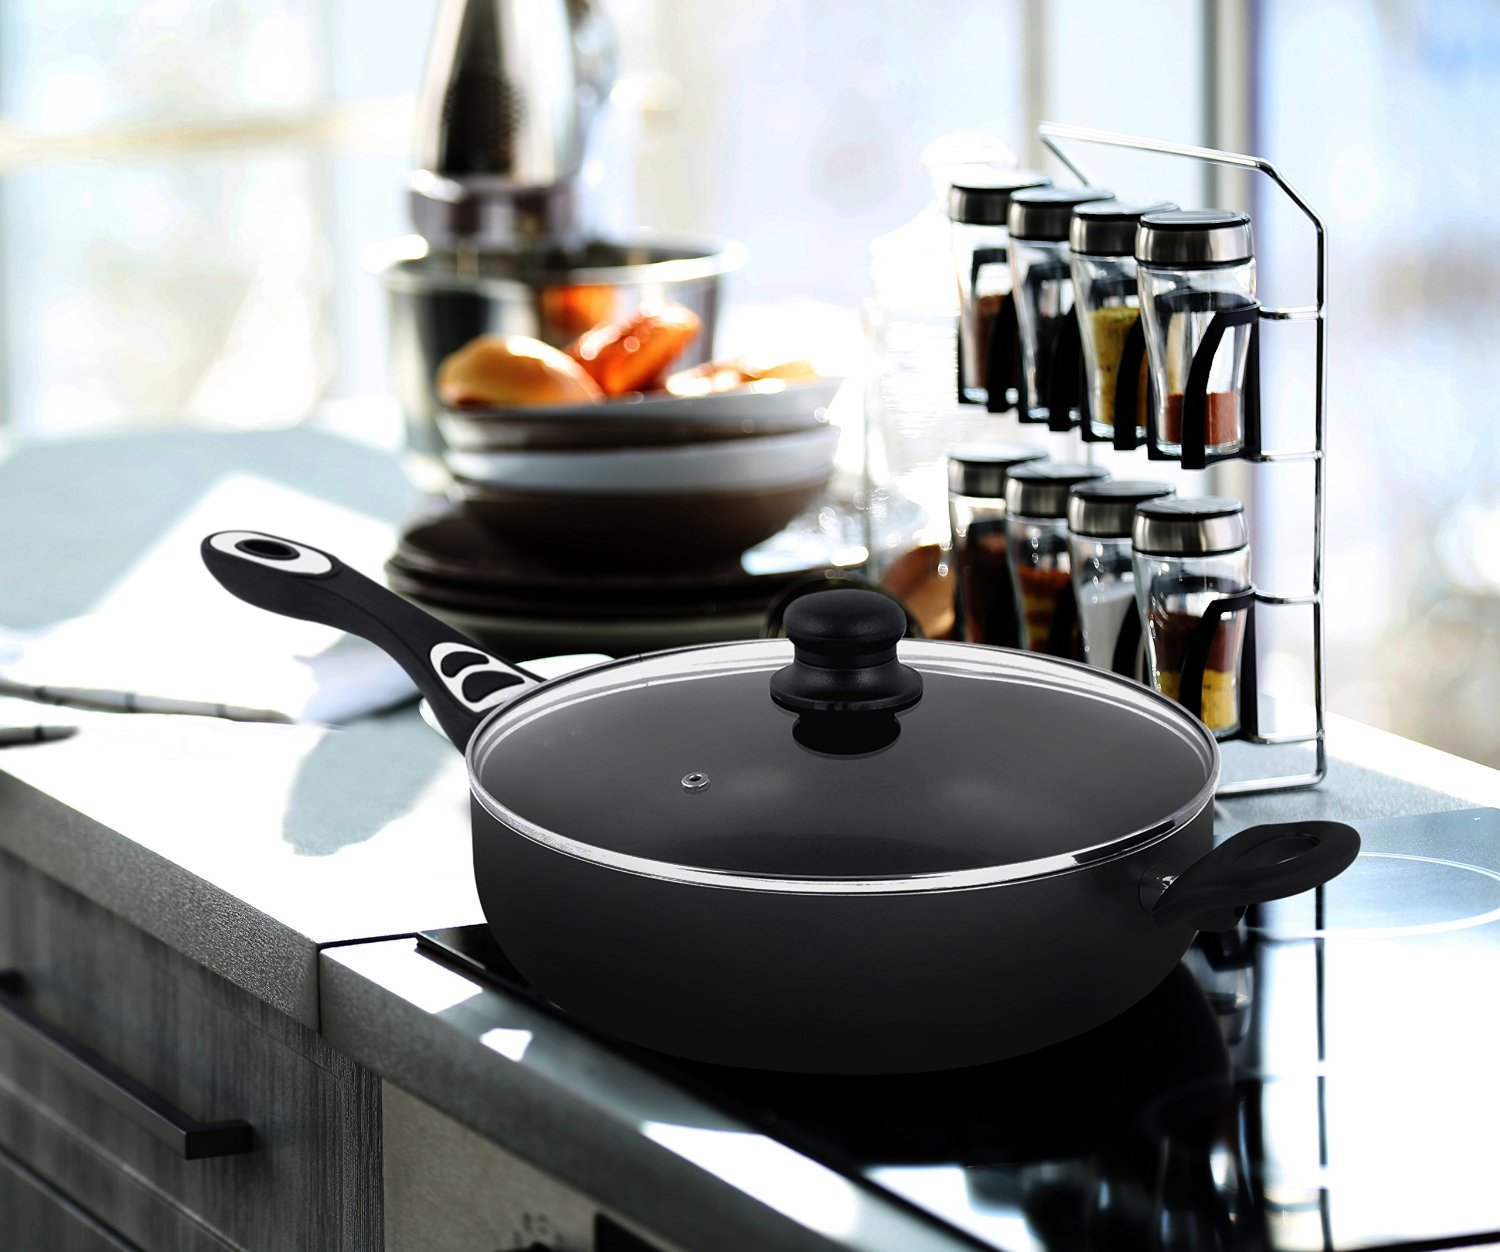 Top 10 Best Frying Pans in 2020 Reviews